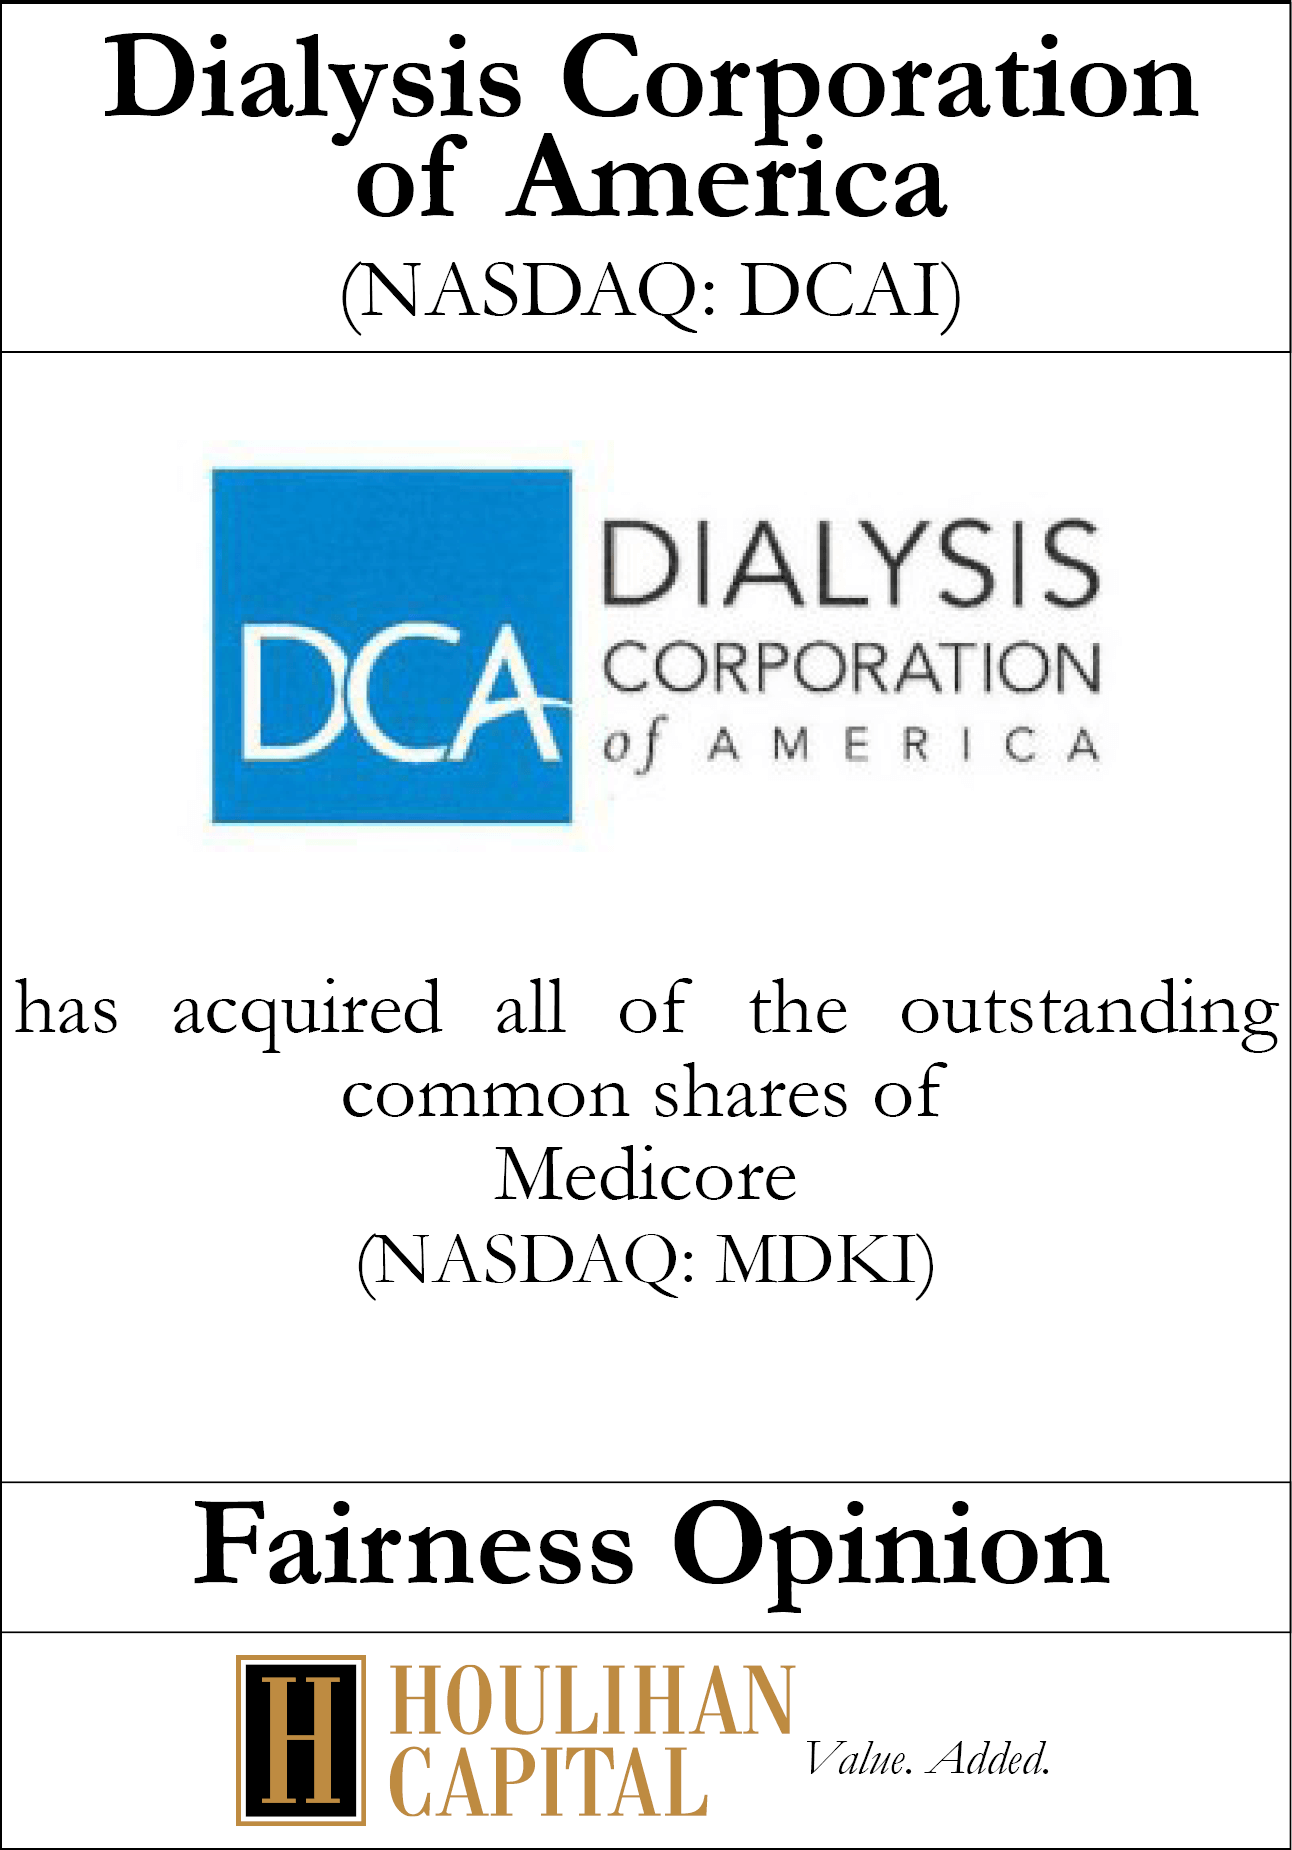 Dialysis corporation tombstone – Houlihan Capital